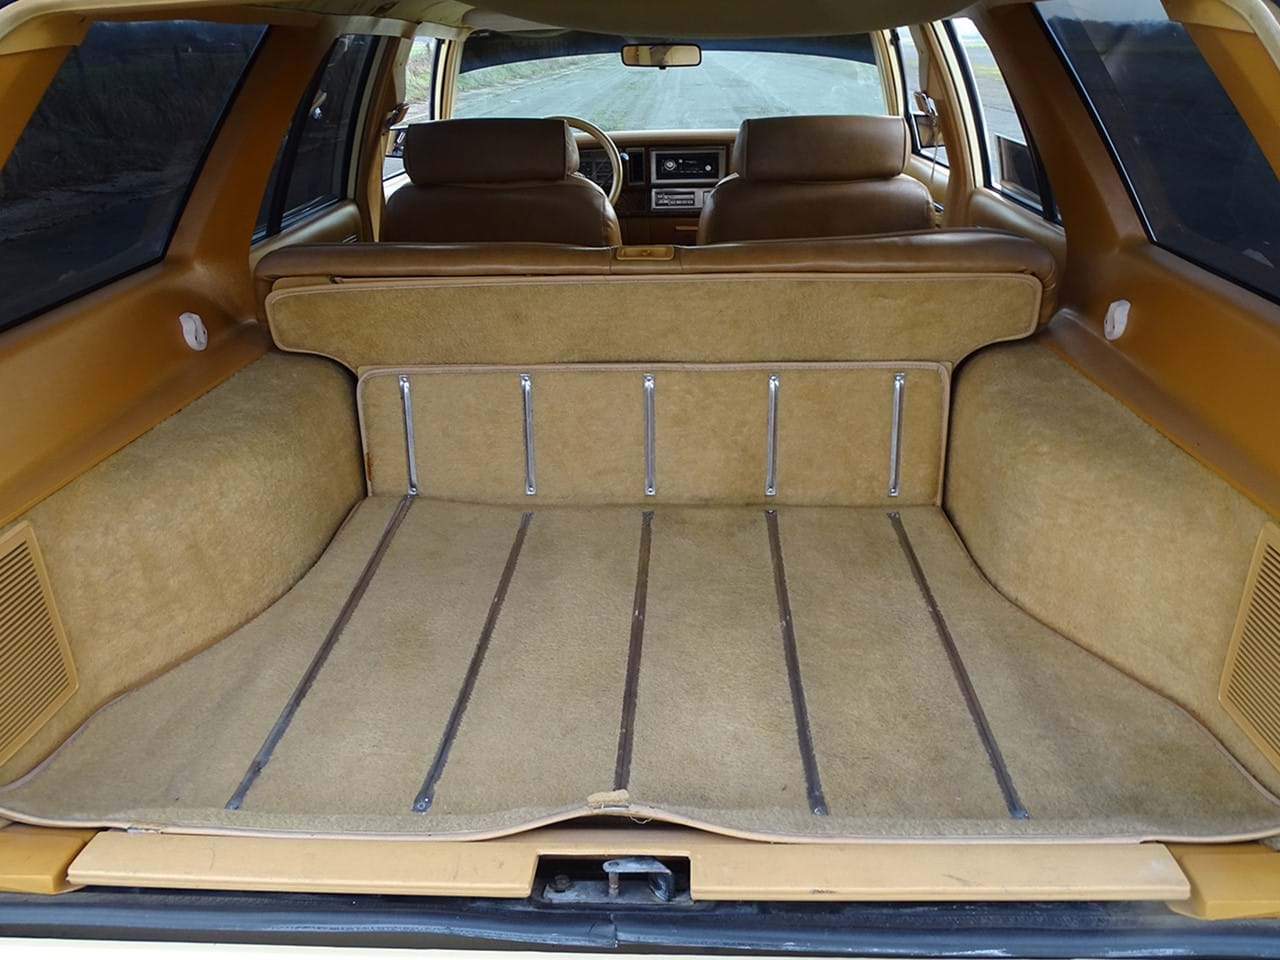 1985 Chrysler LeBaron Town and Country Wagon rear floor